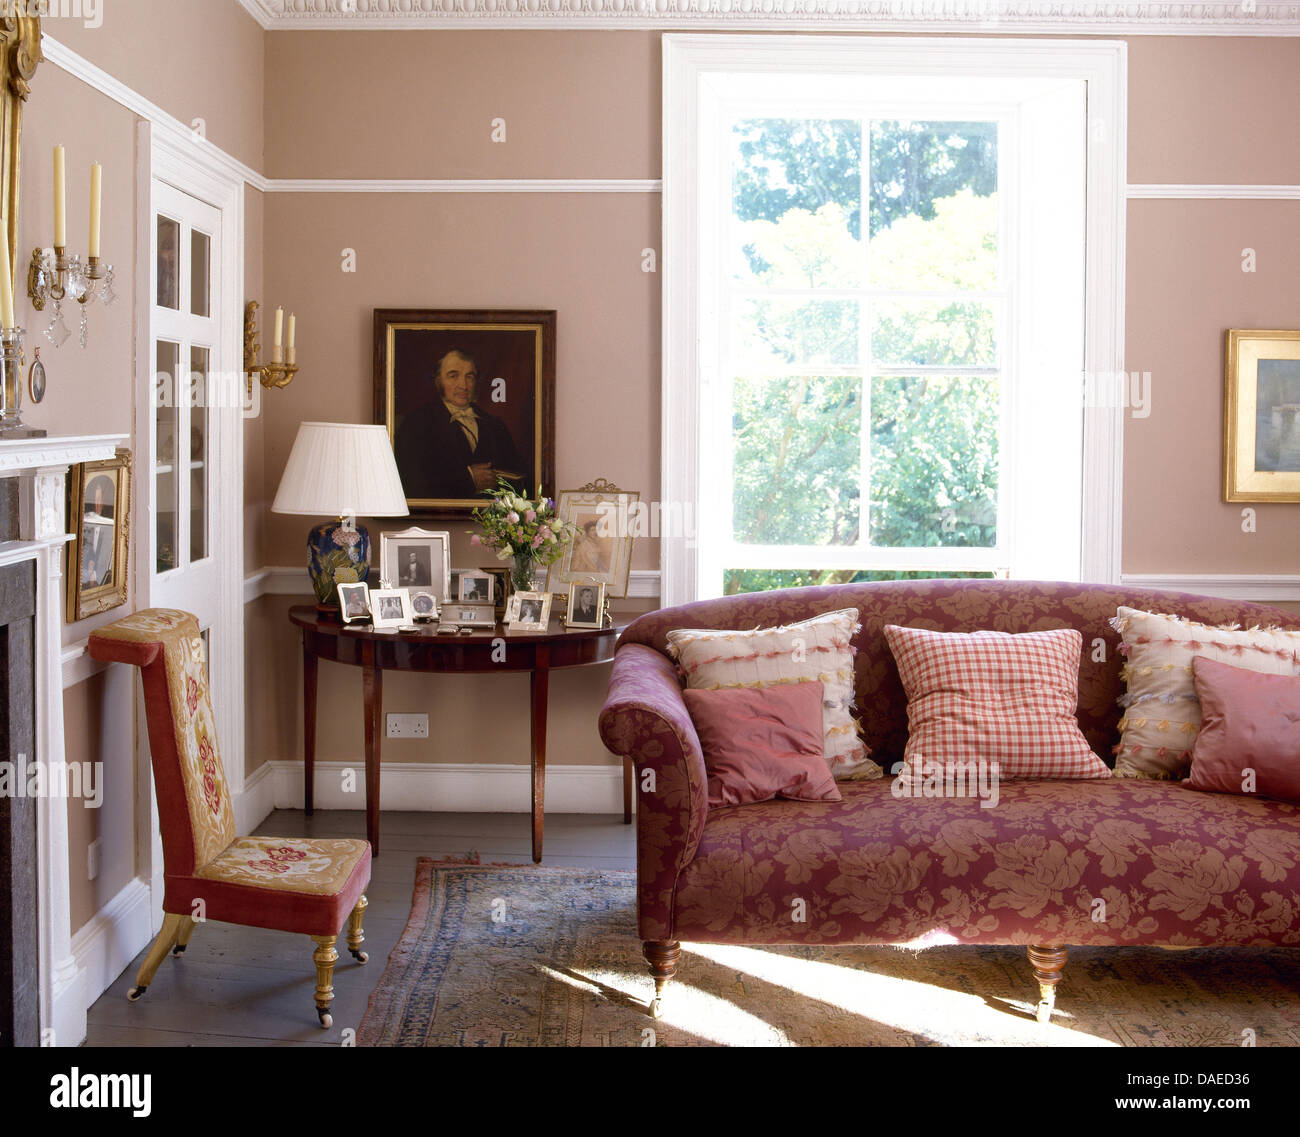 Patterned Cushions On Red Damask Sofa In Pink Country Sitting Room With  Antique Demi Lune